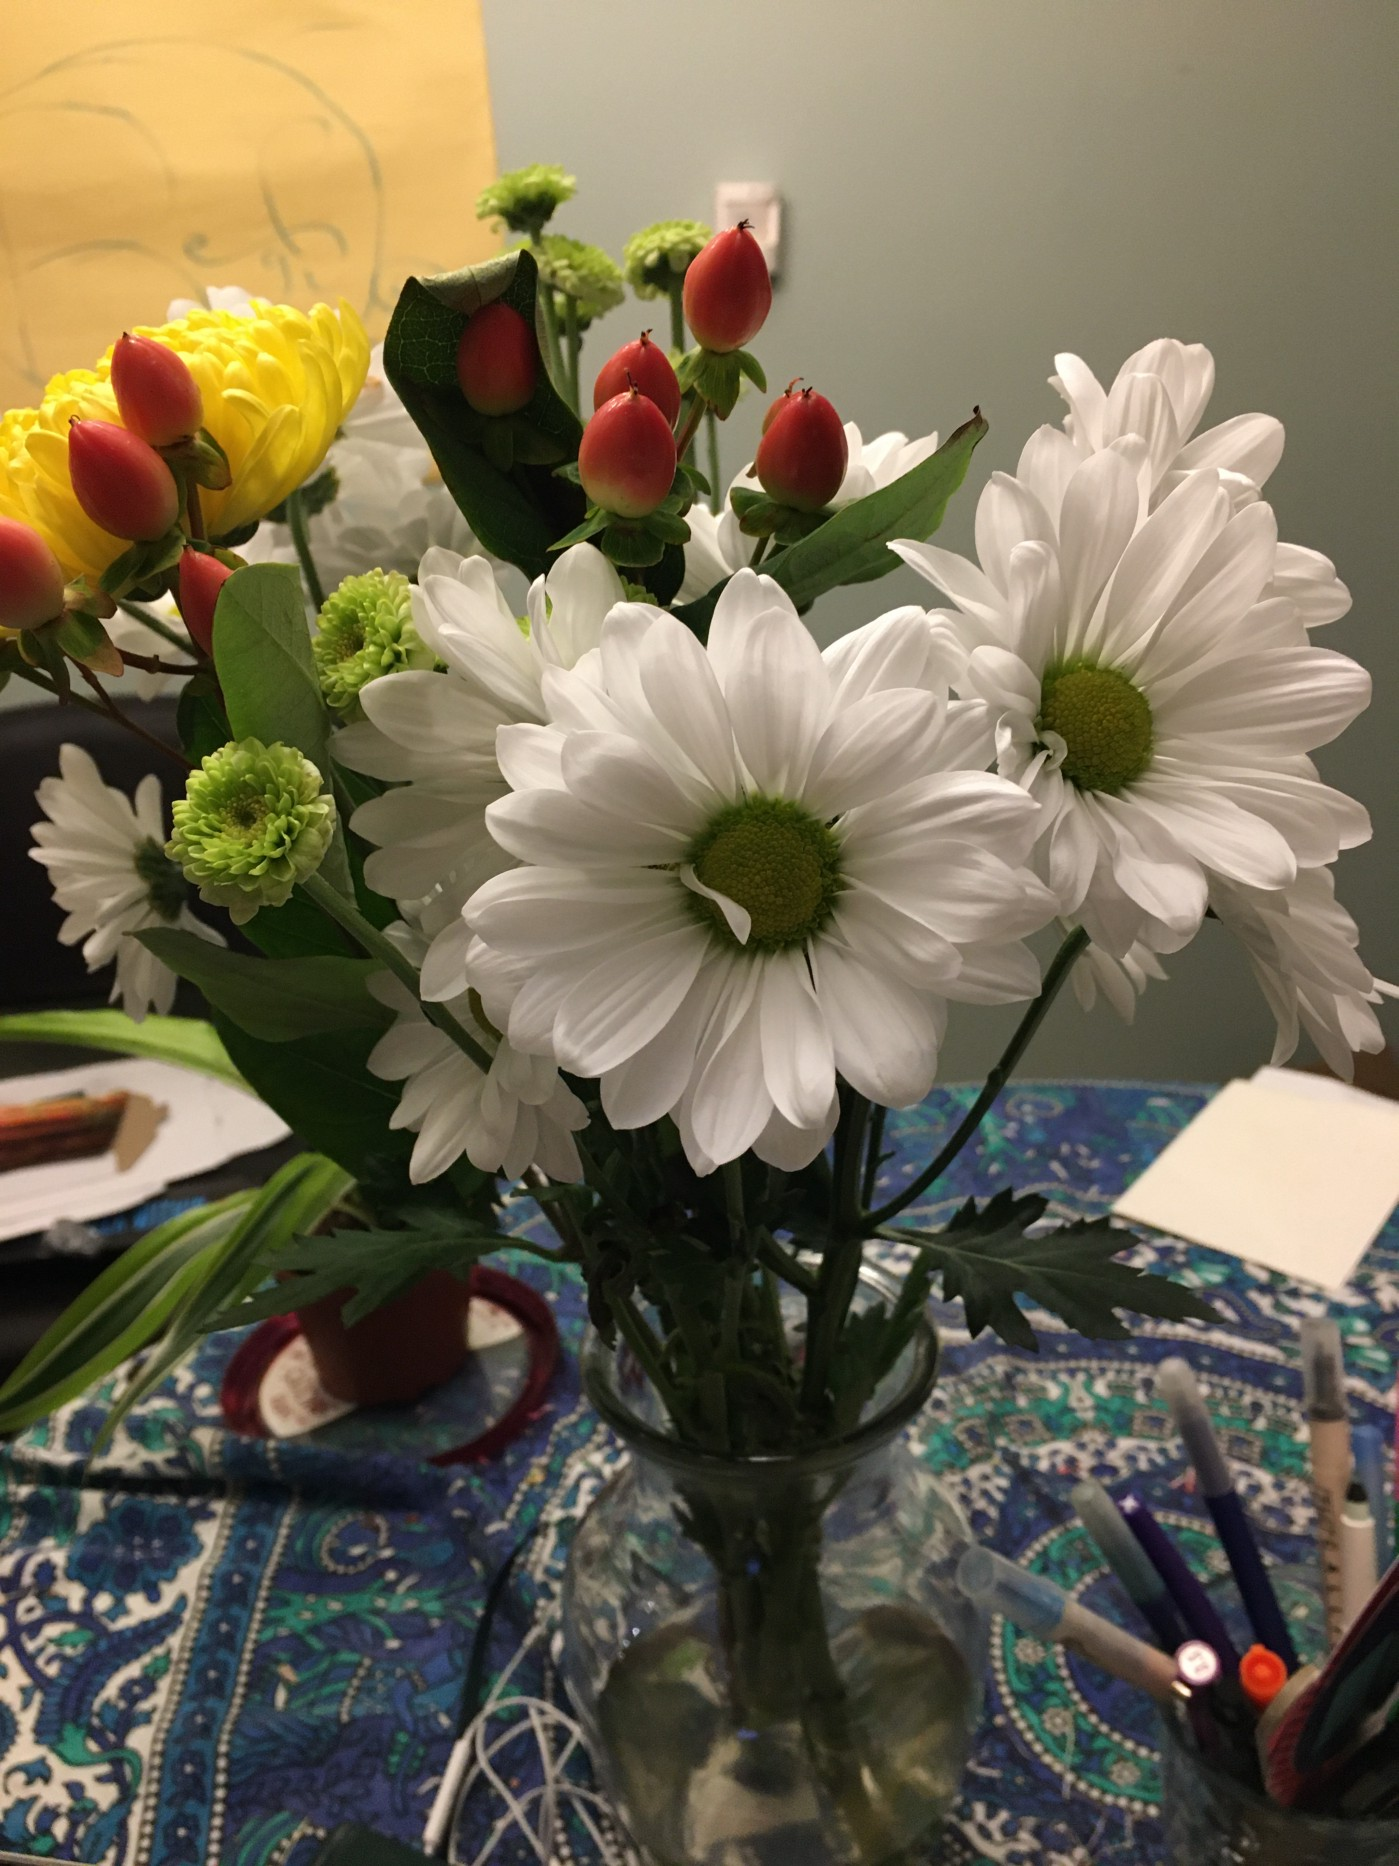 Bouquet with mostly whit chrysanthemums, a yellow one, and some types of red buds, in vase on Turquoise and blue Indian tablecloth with a few pens to the side.